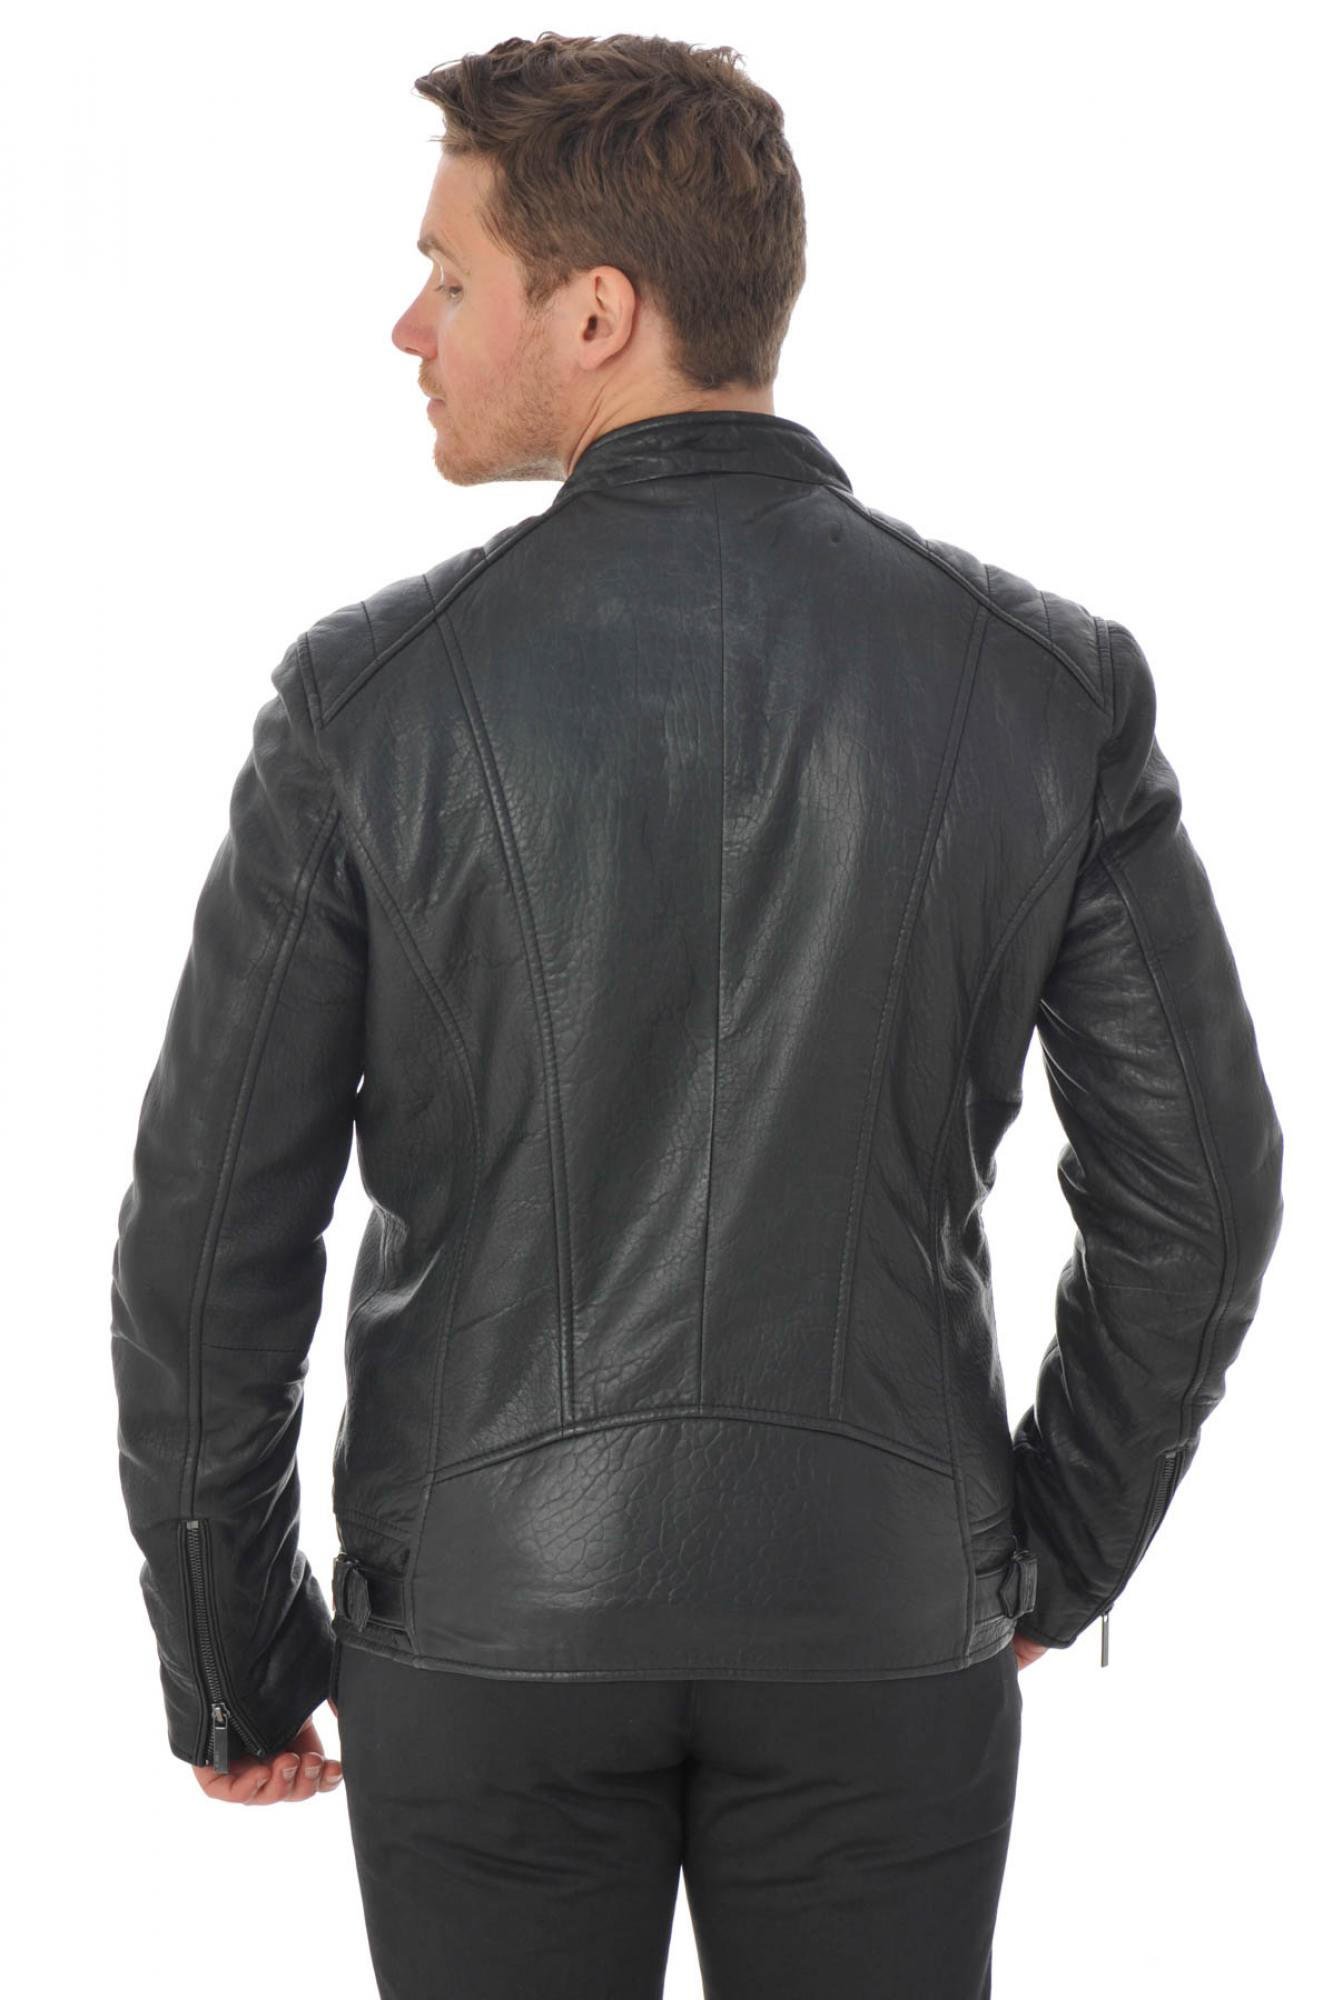 Blouson Noir 51 51 Blouson Oakwood Shadow Noir Oakwood Shadow gqtpCpx